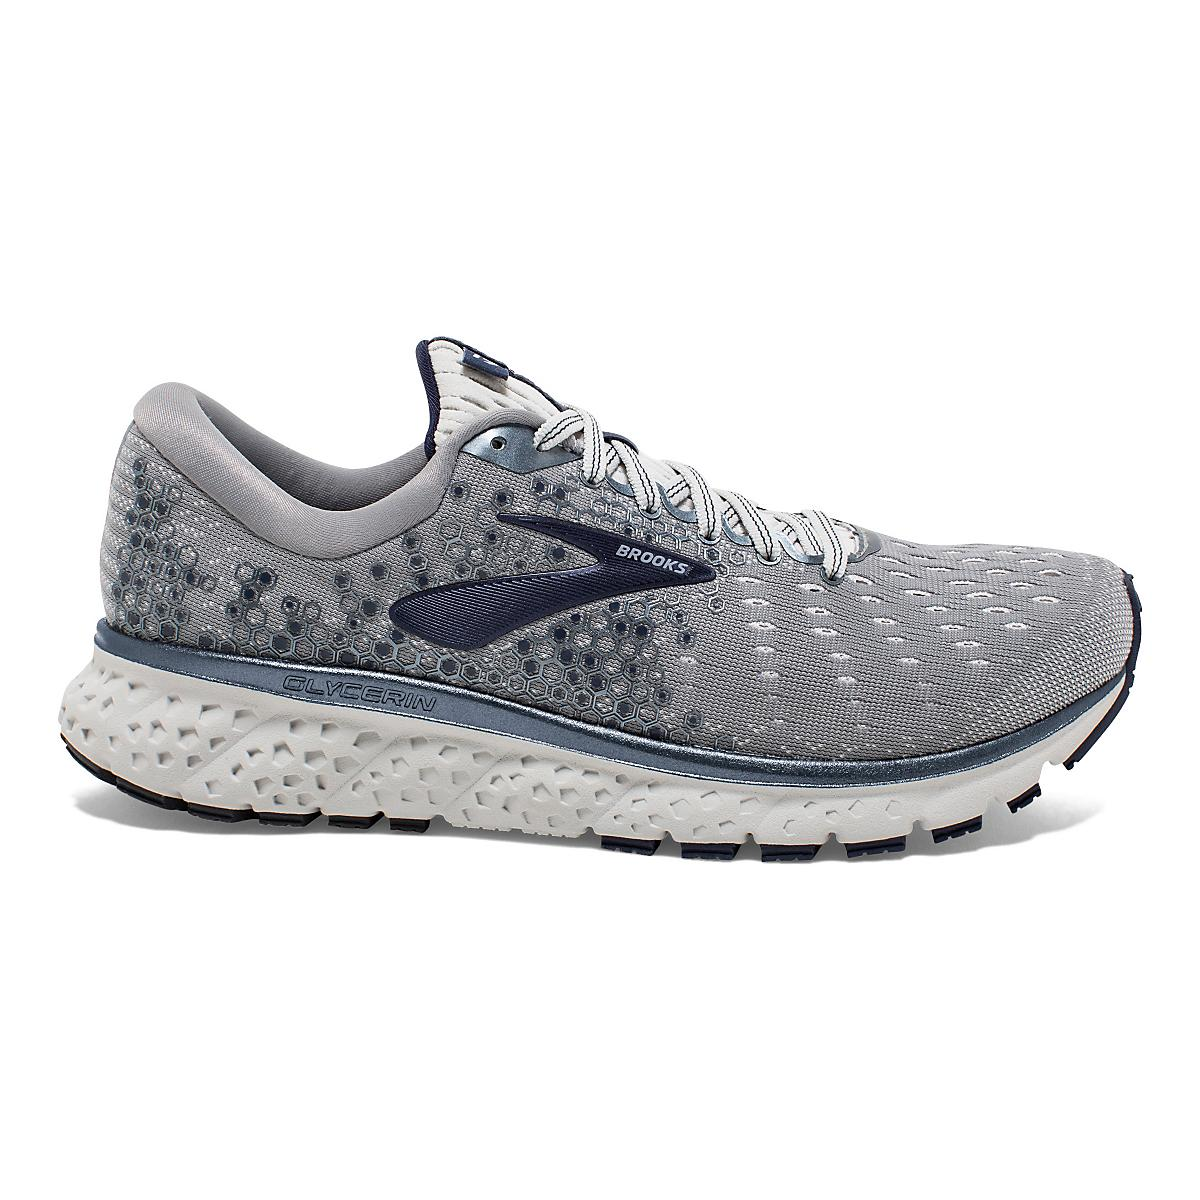 d0a8a587eb0 Mens Brooks Glycerin 17 Running Shoe at Road Runner Sports